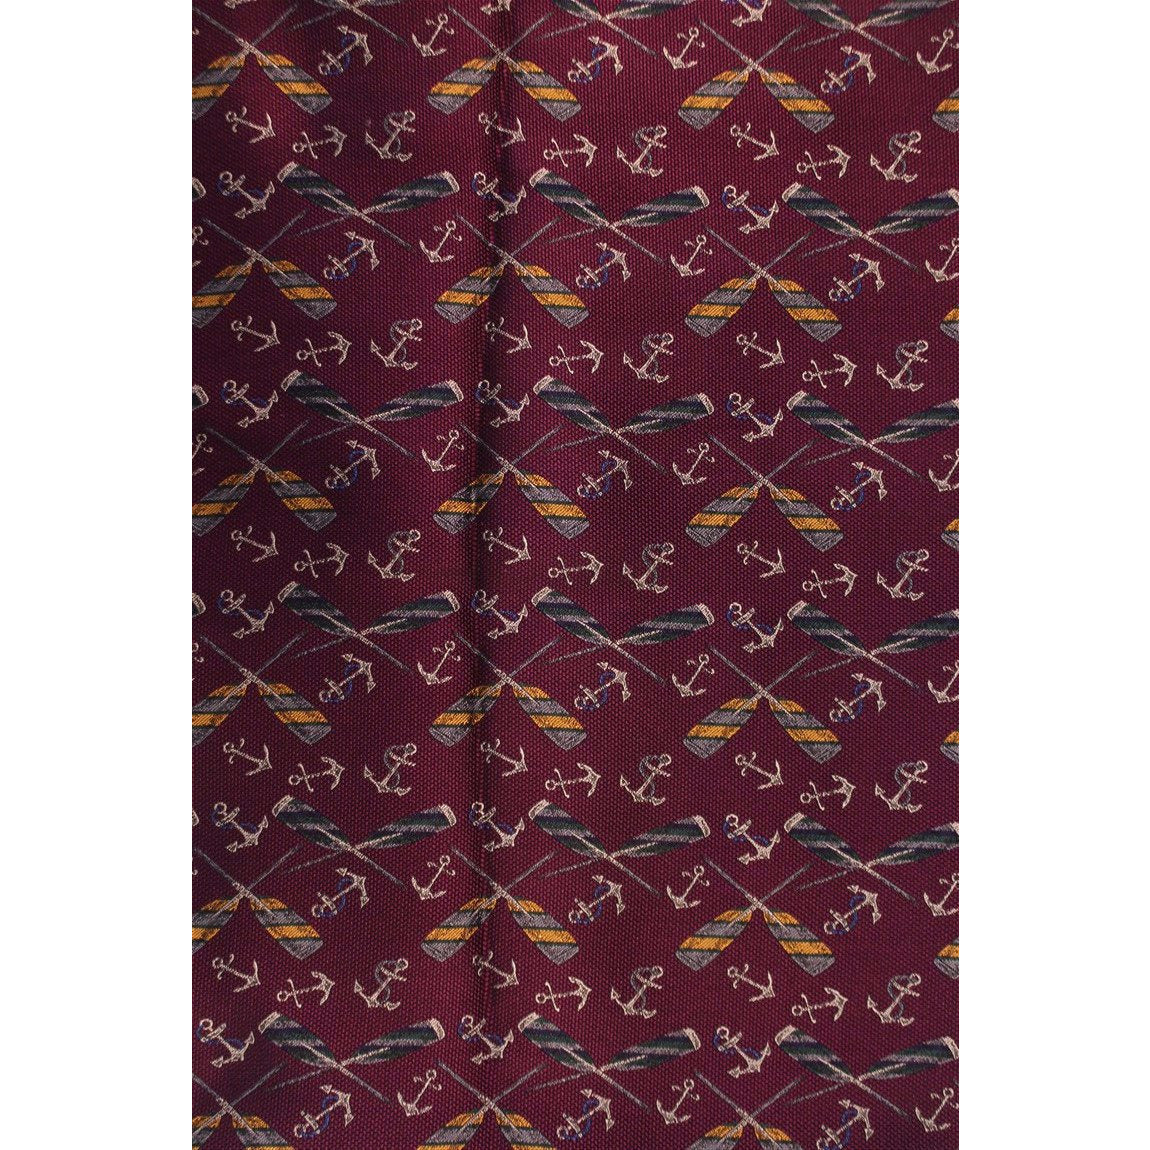 Cross Oars & Anchors on Plum Colour Fabric